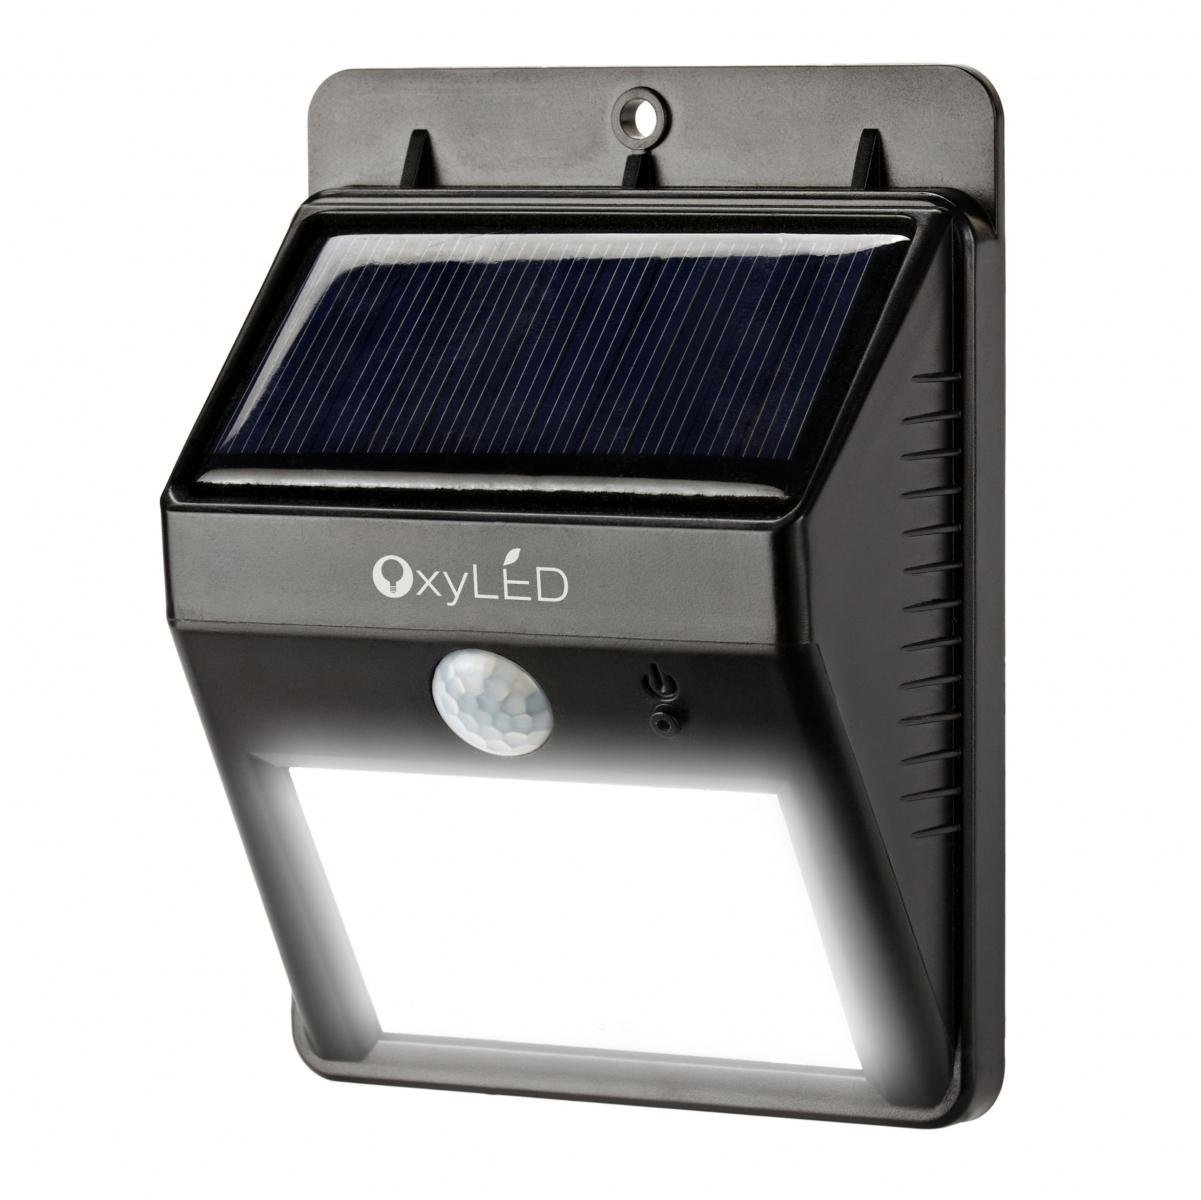 oxyled sl30 bright outdoor led light solar powered. Black Bedroom Furniture Sets. Home Design Ideas